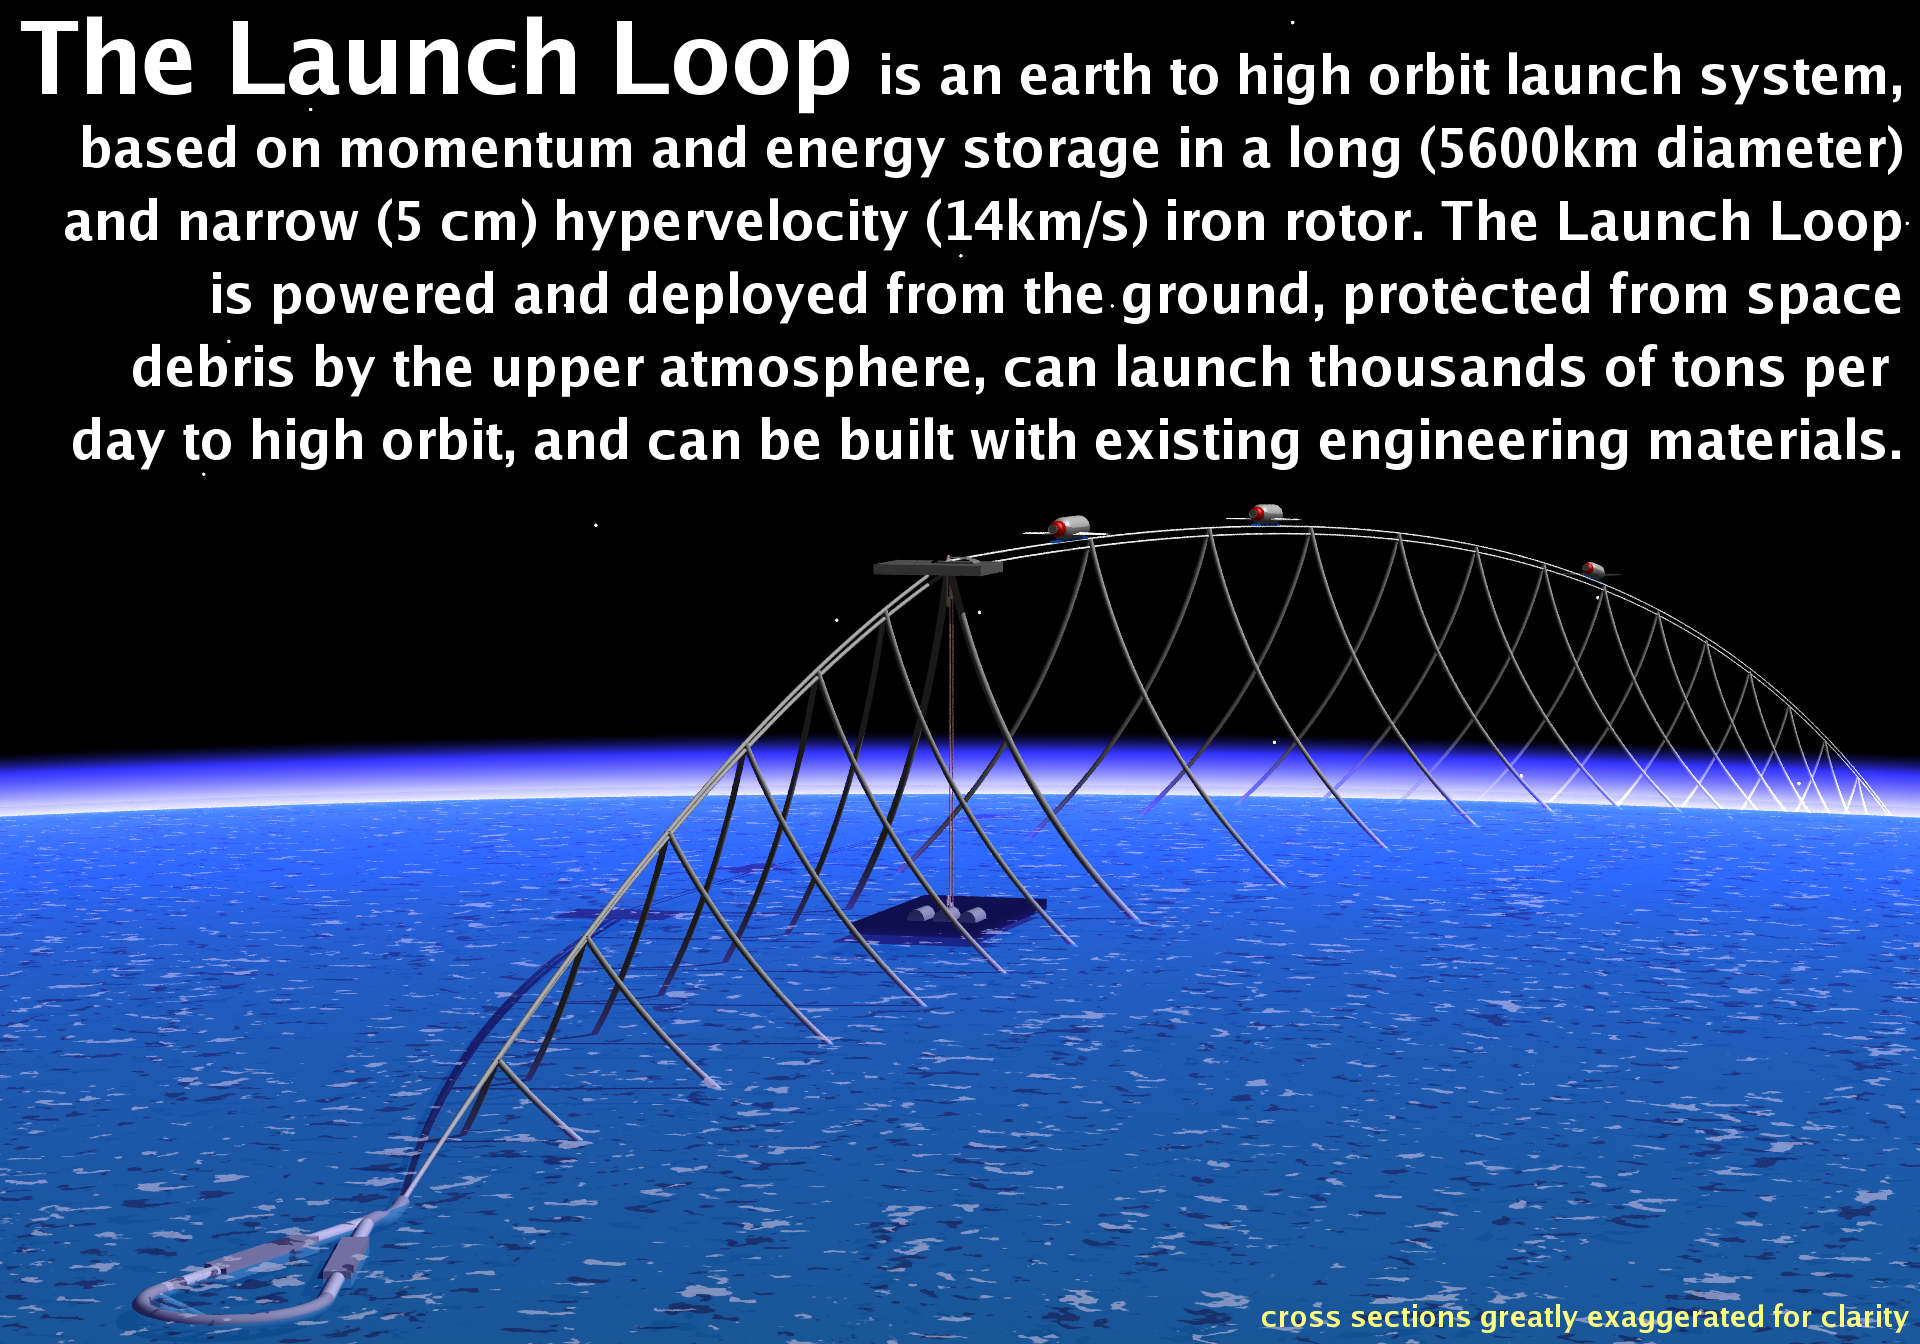 Launch loop picture with intro